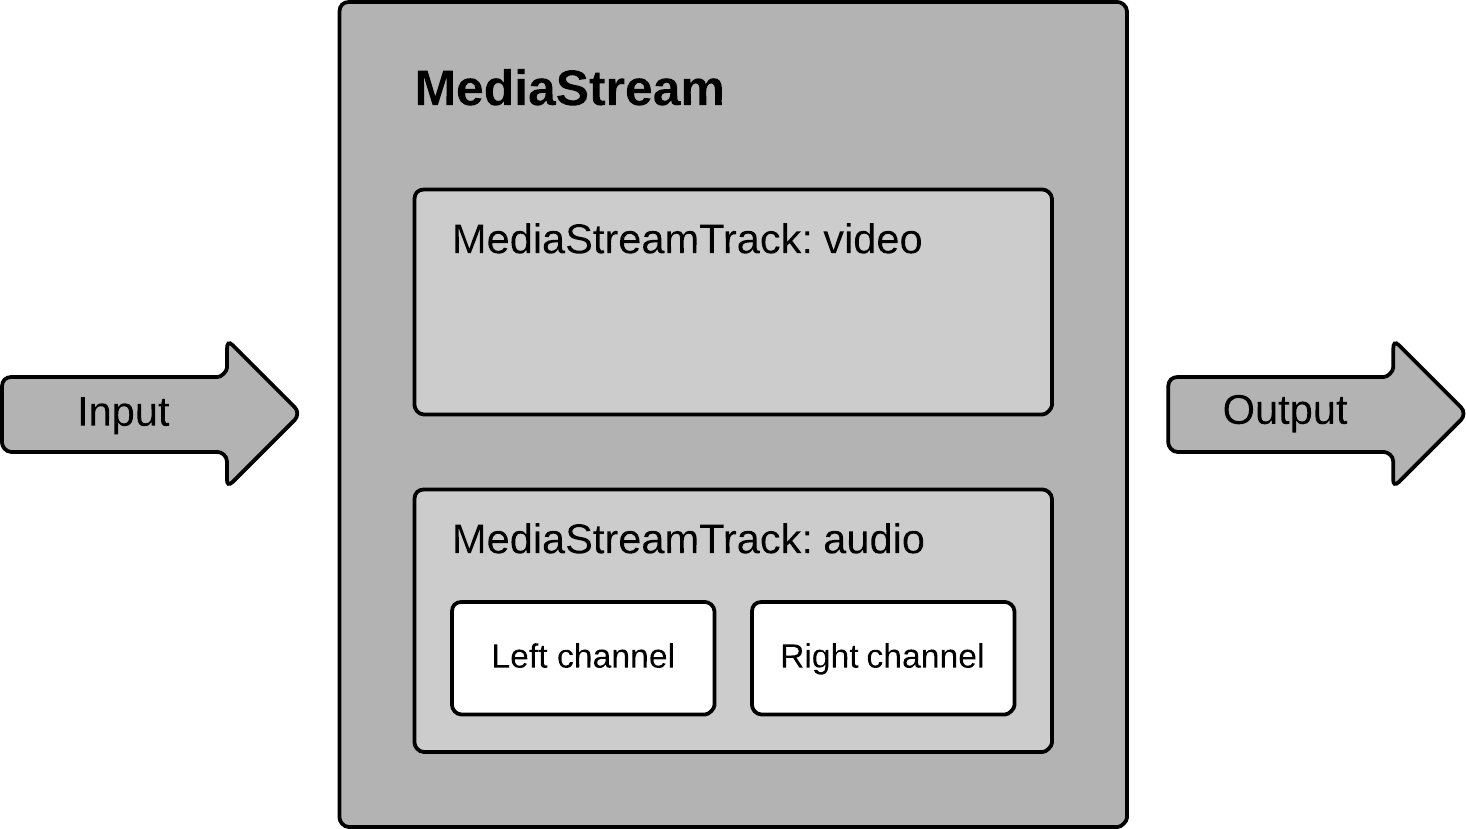 MediaStream diagram